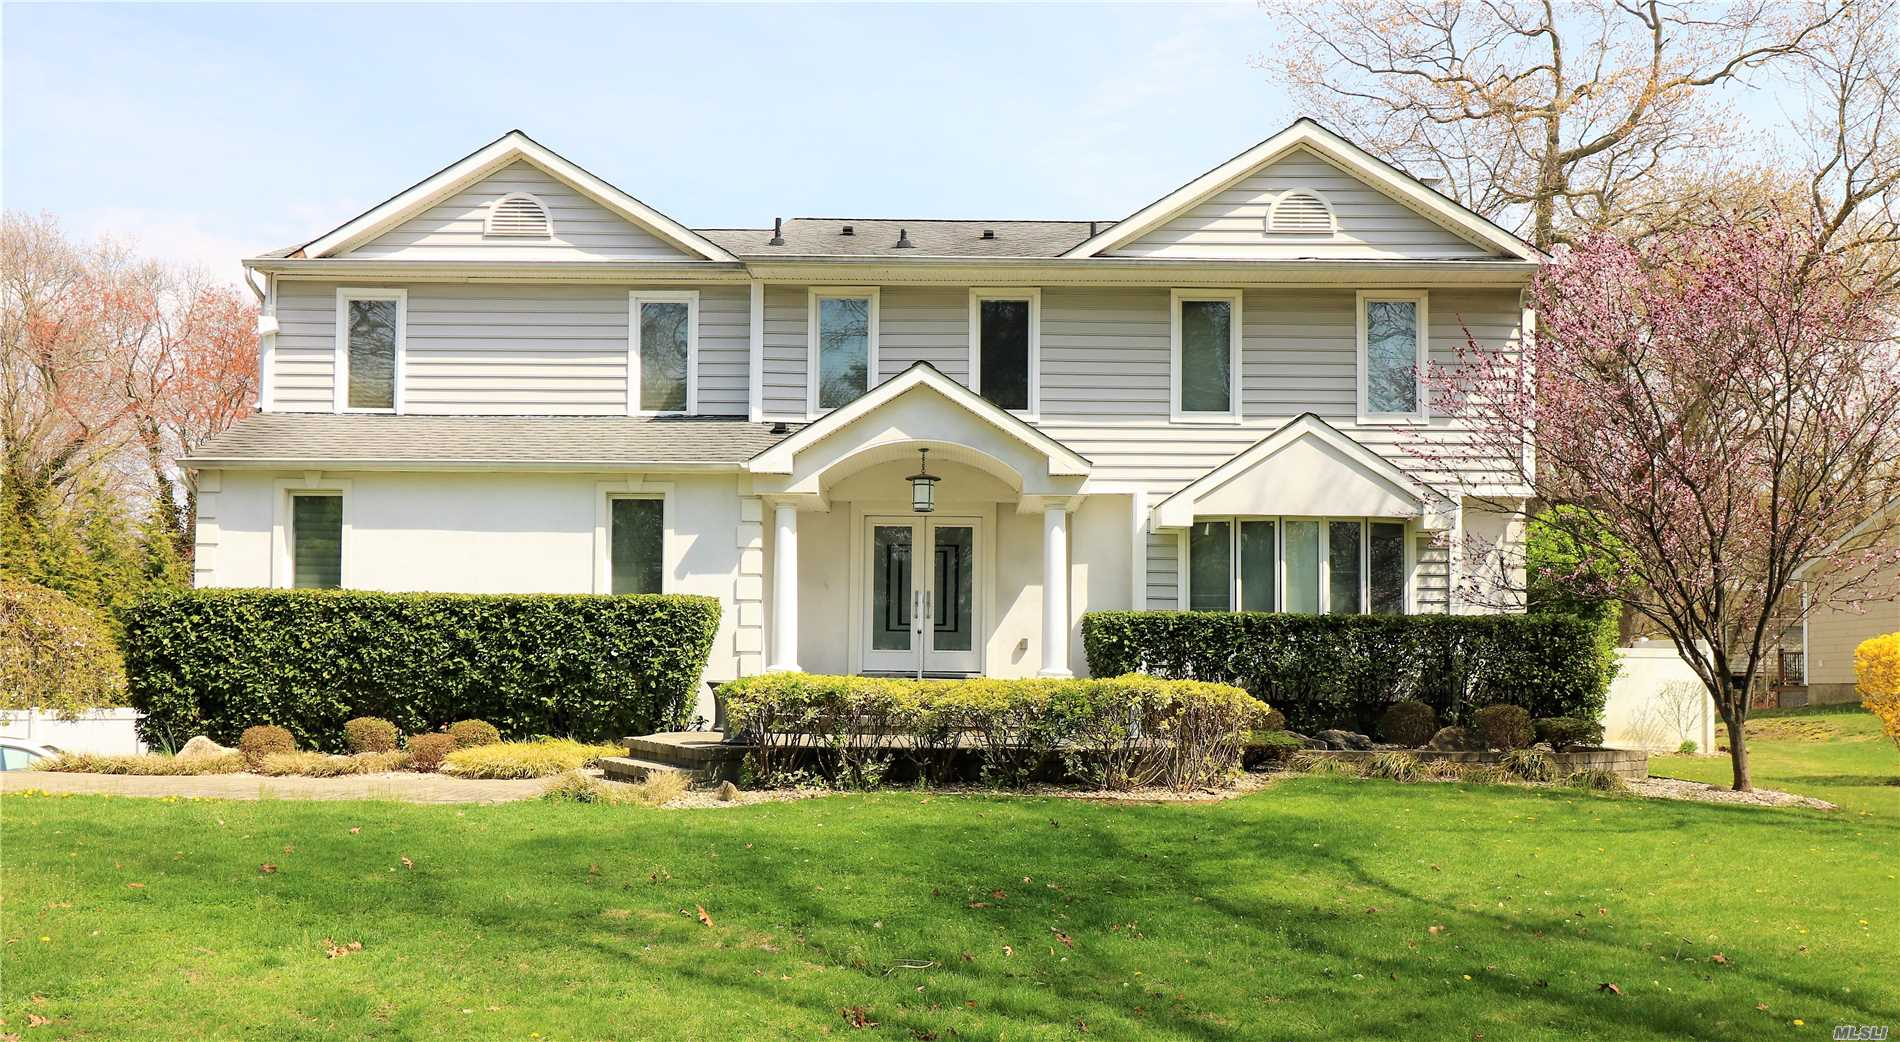 Photo of home for sale at 24 Mclane Dr, Dix Hills NY